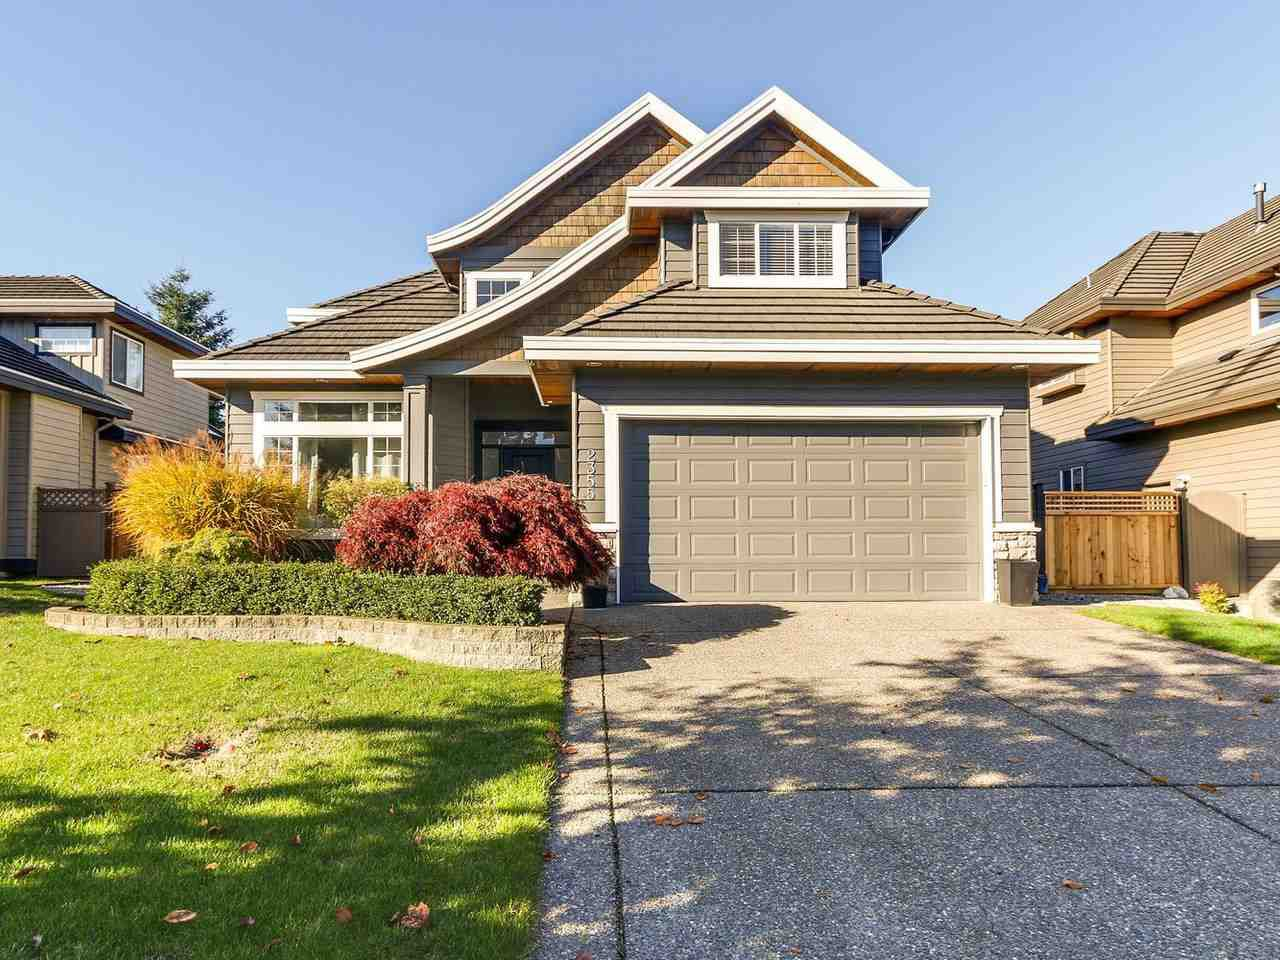 """Main Photo: 2355 150 Street in Surrey: Sunnyside Park Surrey House for sale in """"Meridian By The Sea"""" (South Surrey White Rock)  : MLS®# R2236790"""